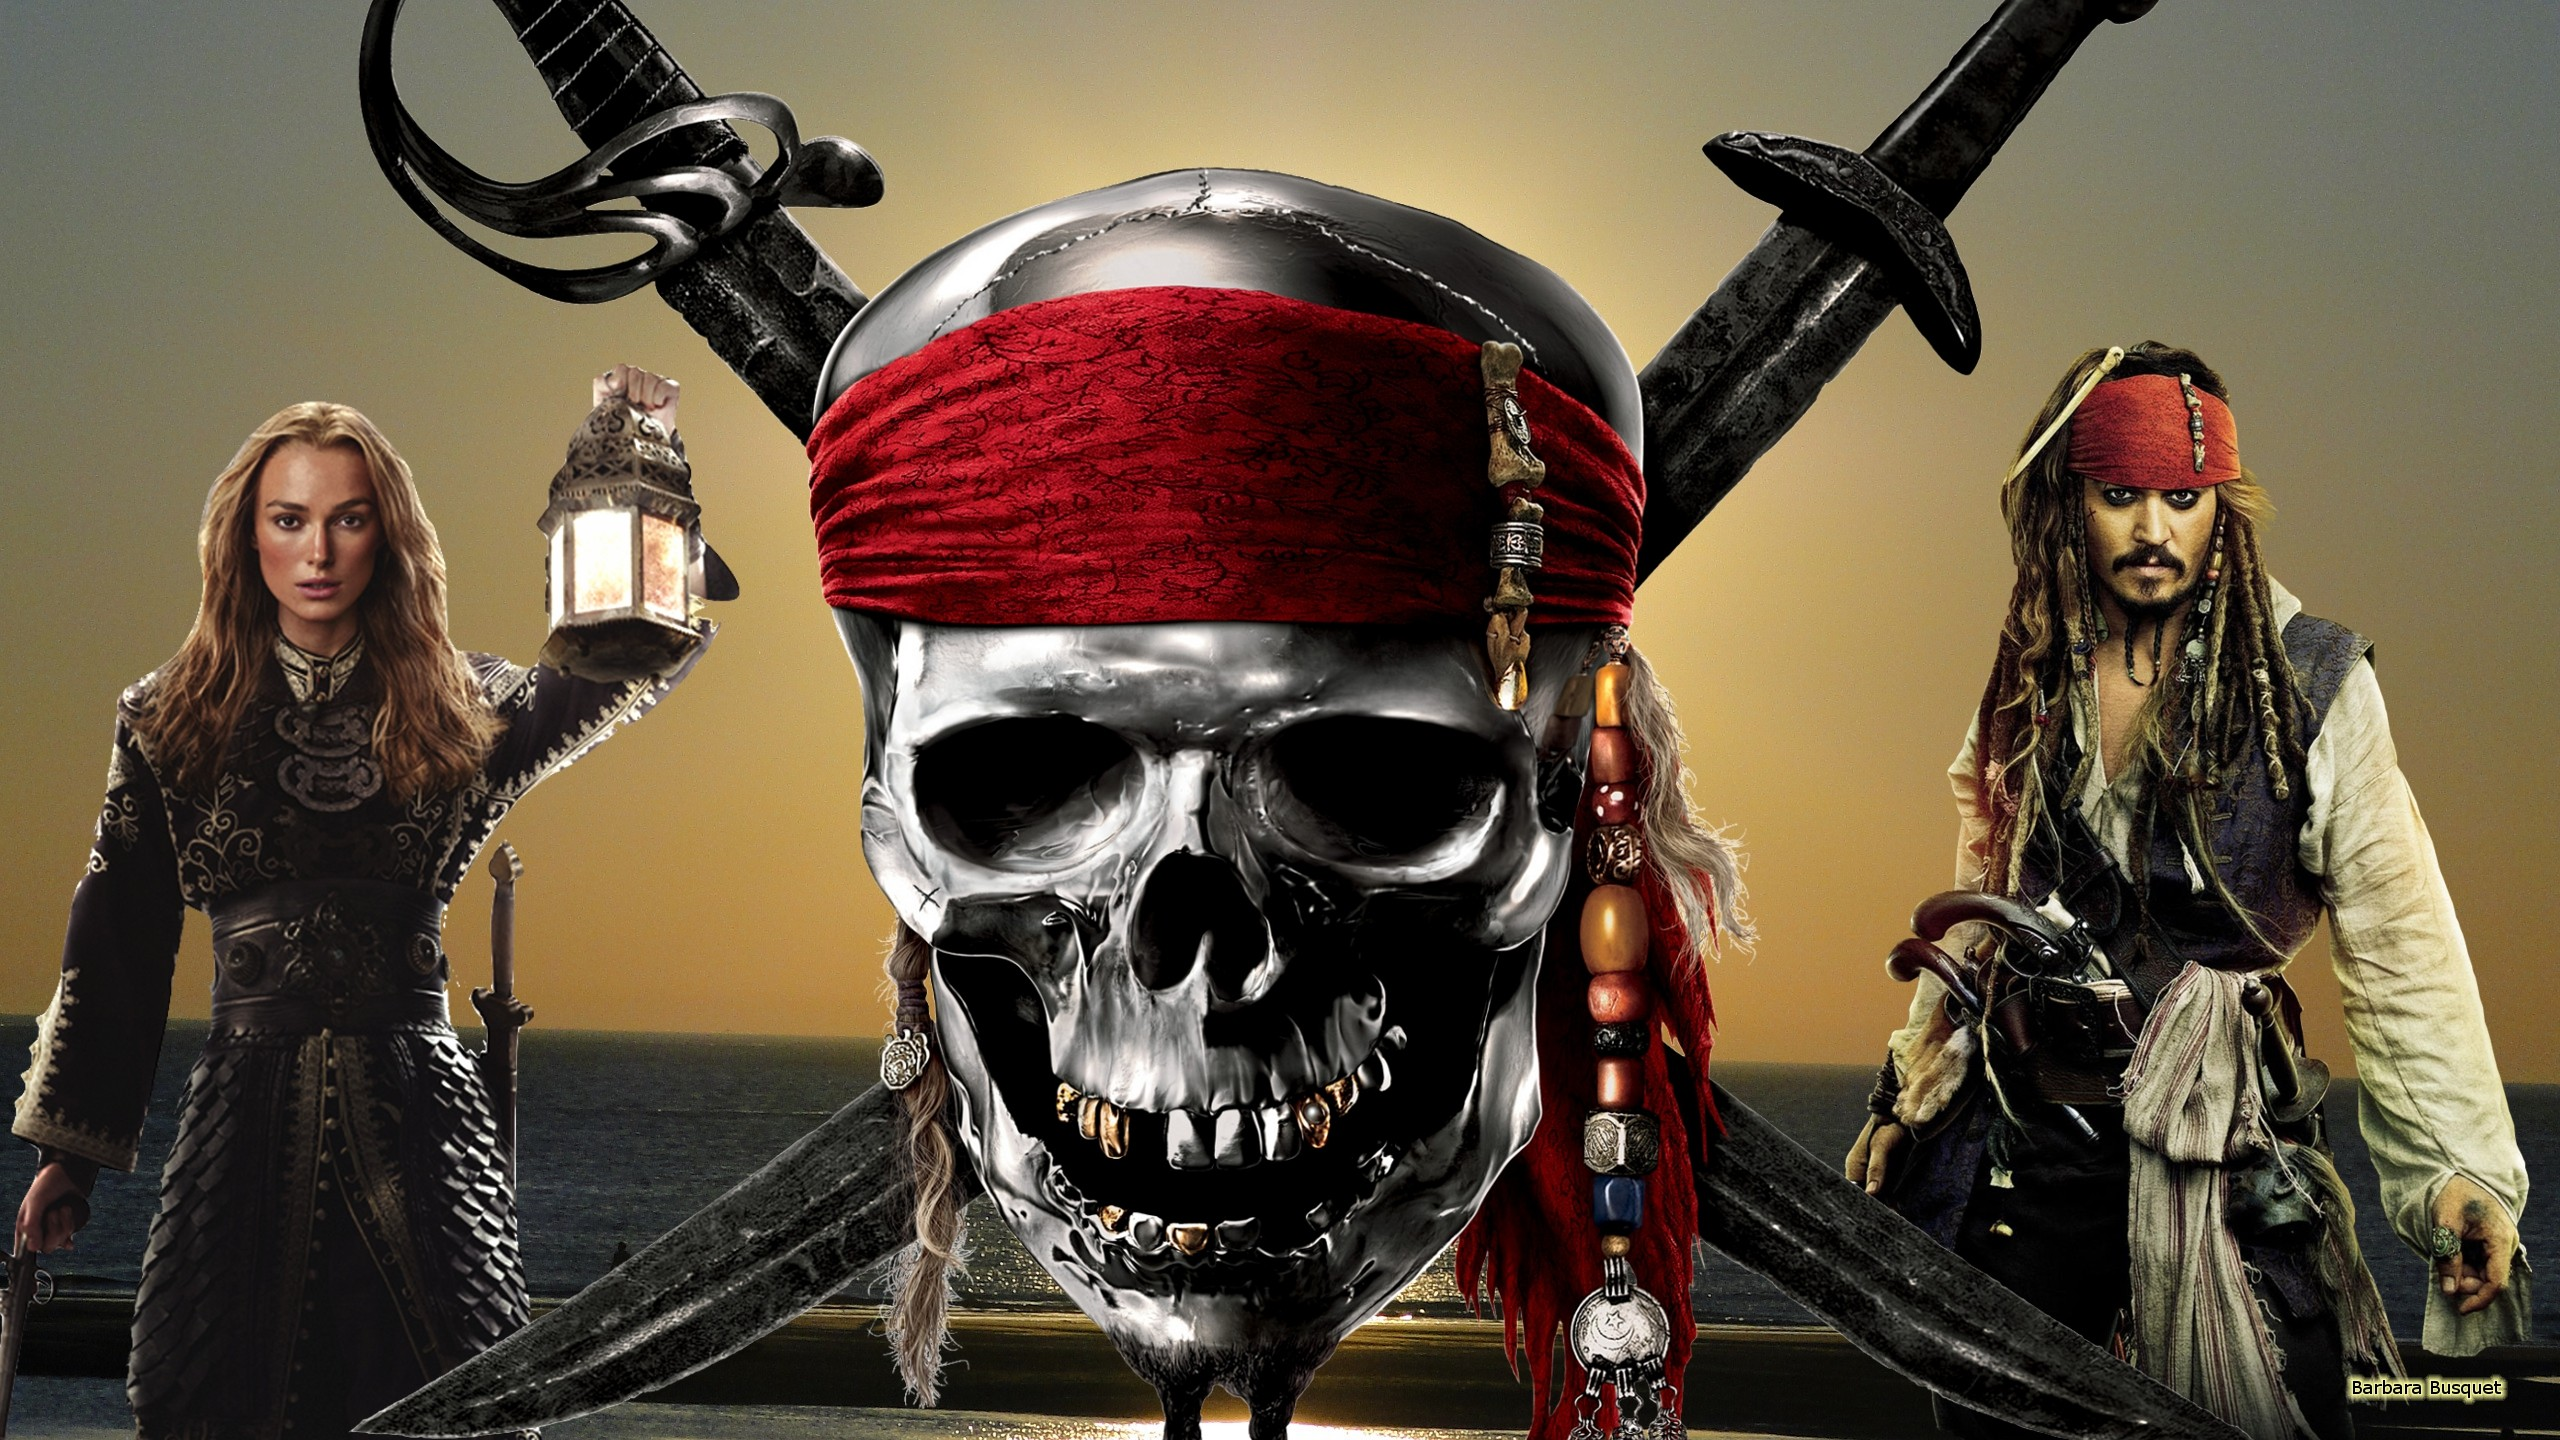 pirates of the caribbean wallpapers - barbaras hd wallpapers